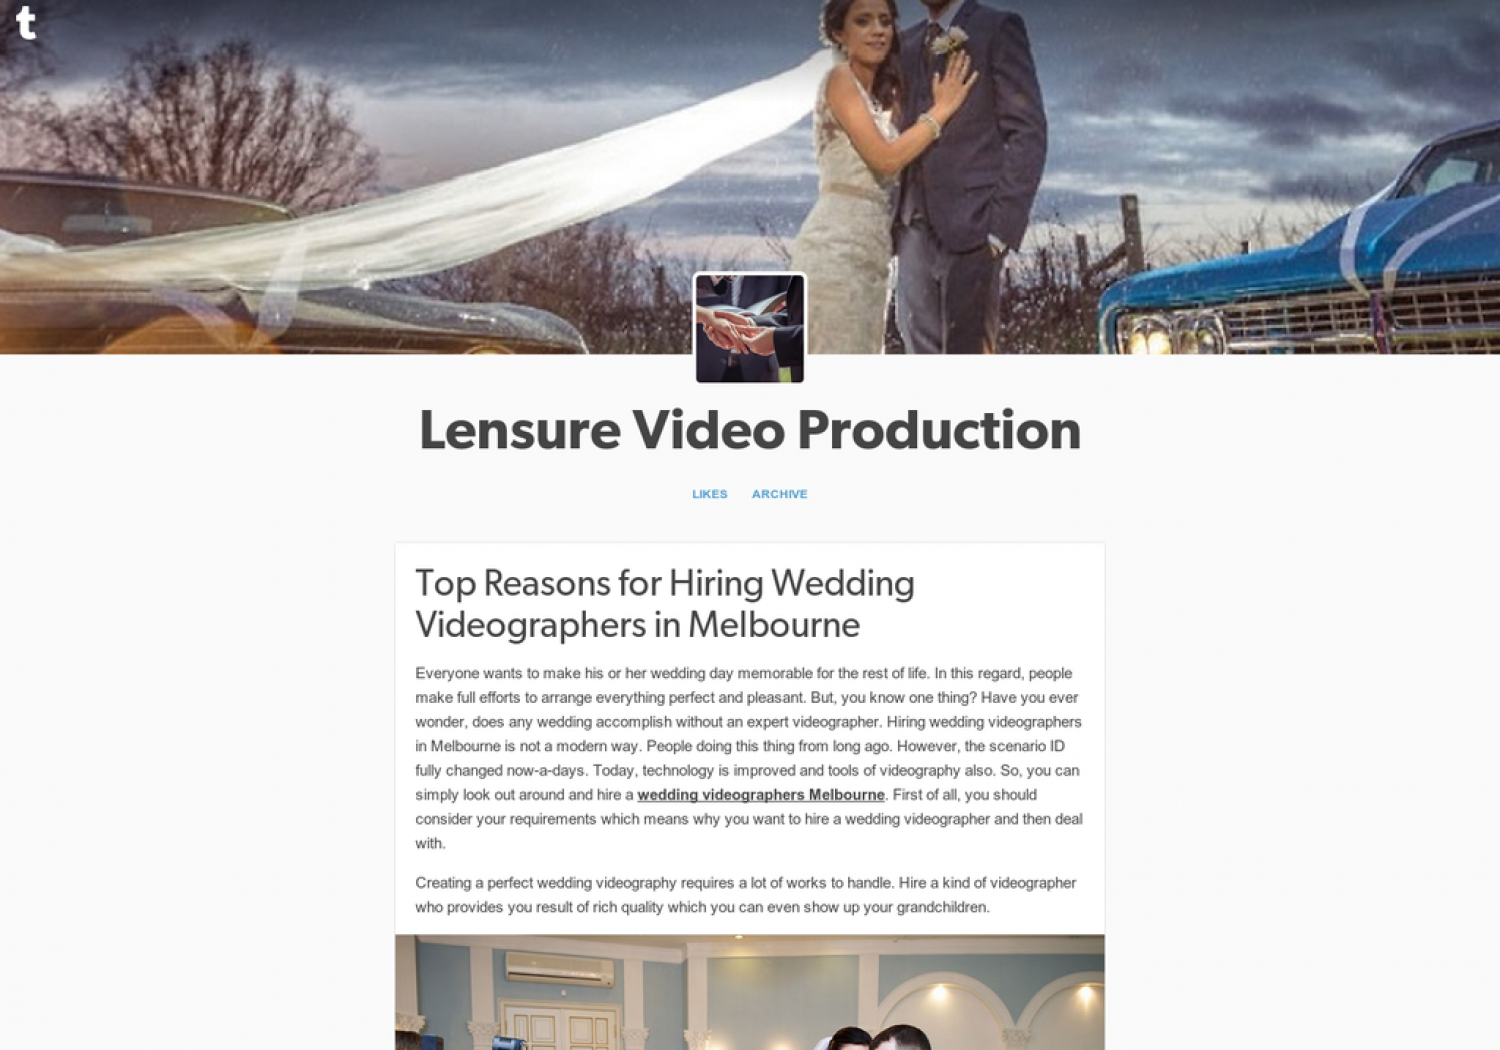 Top Reasons for Hiring Wedding Videographers in Melbourne Infographic